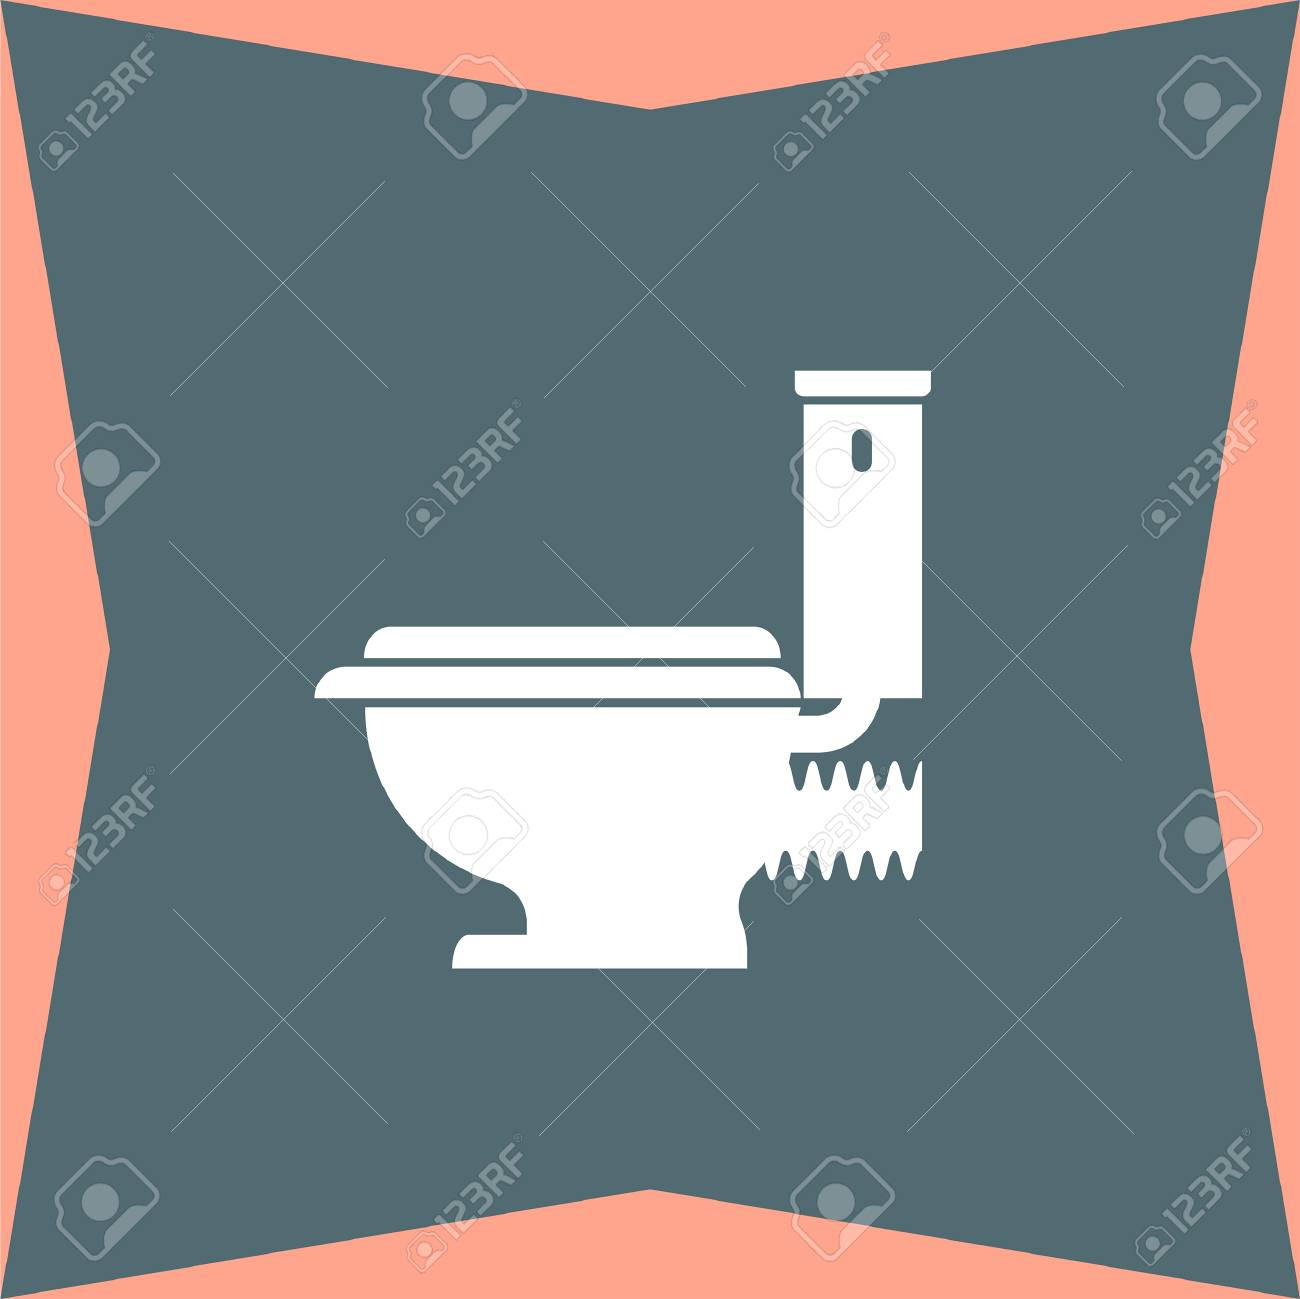 Toilet Seat Vector Icon Royalty Free Cliparts, Vectors, And Stock ...